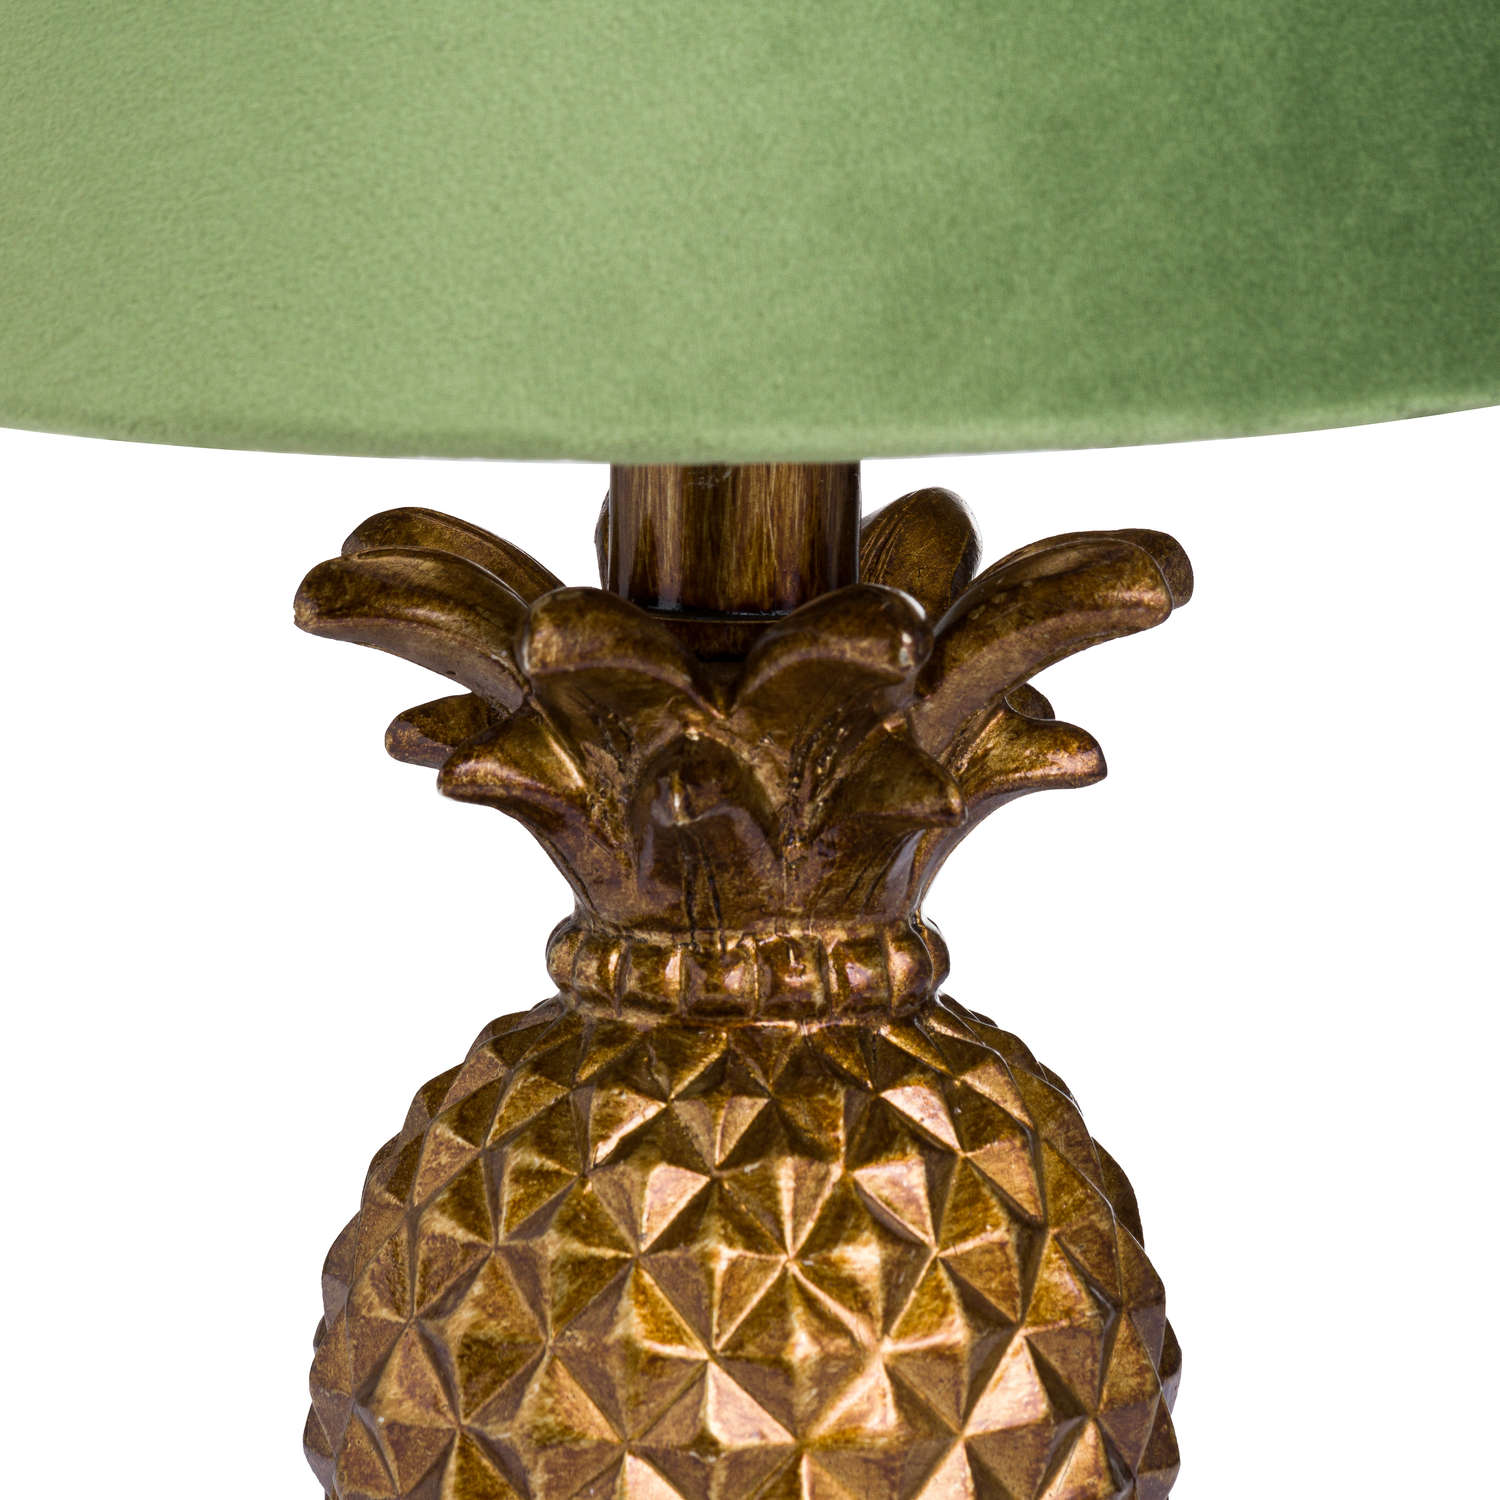 Antique Gold Pineapple Lamp + Artichoke Shade with Gold Lining